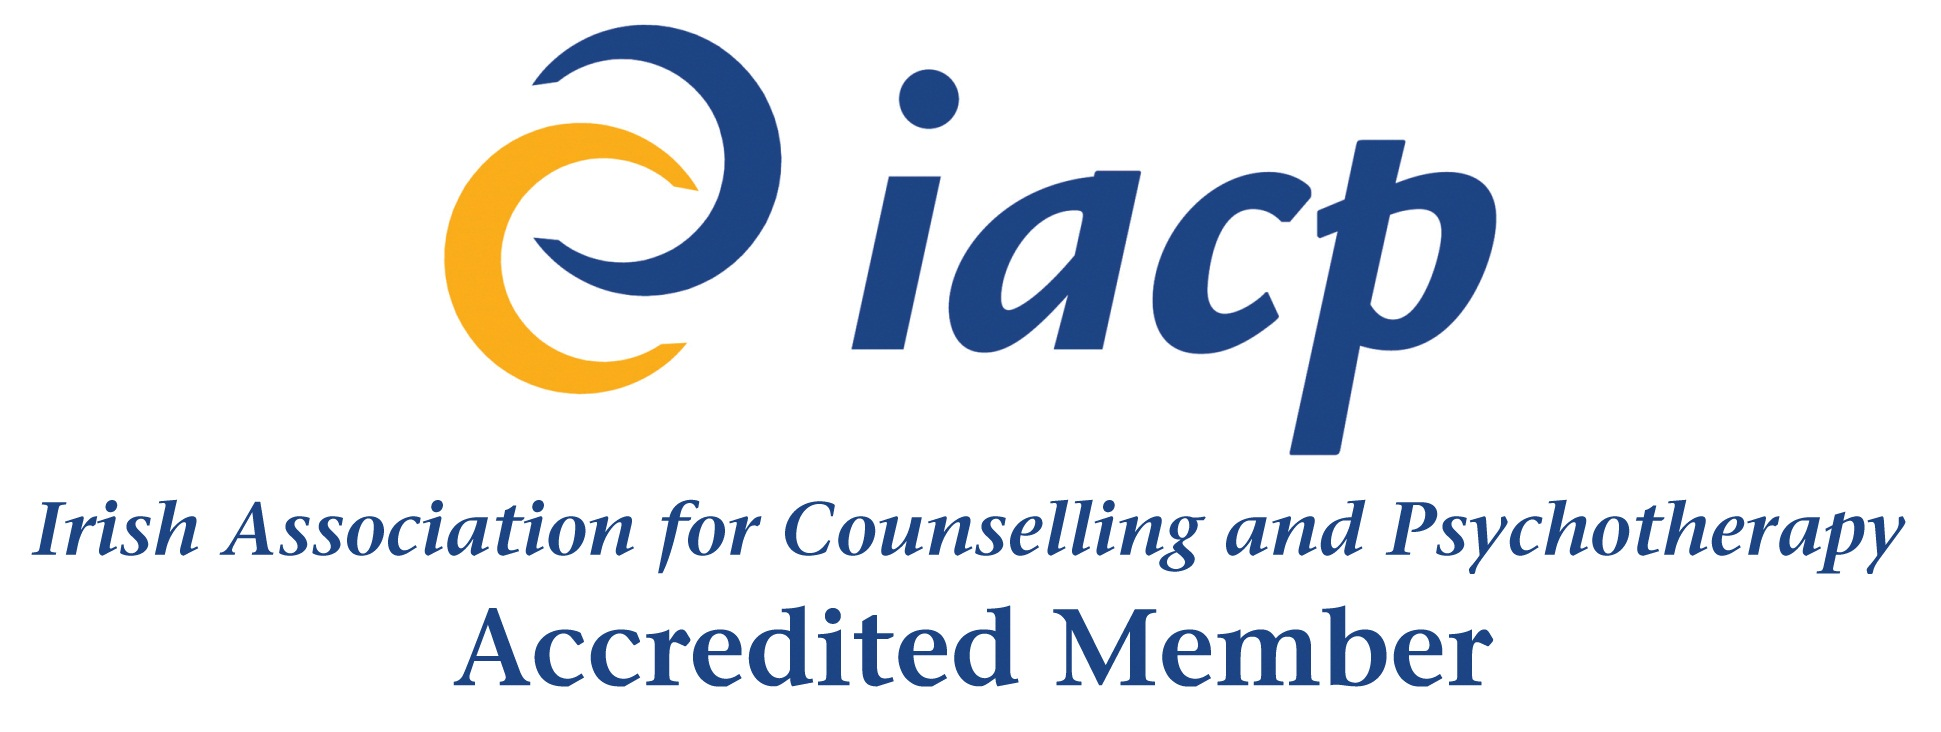 IACP Accredited